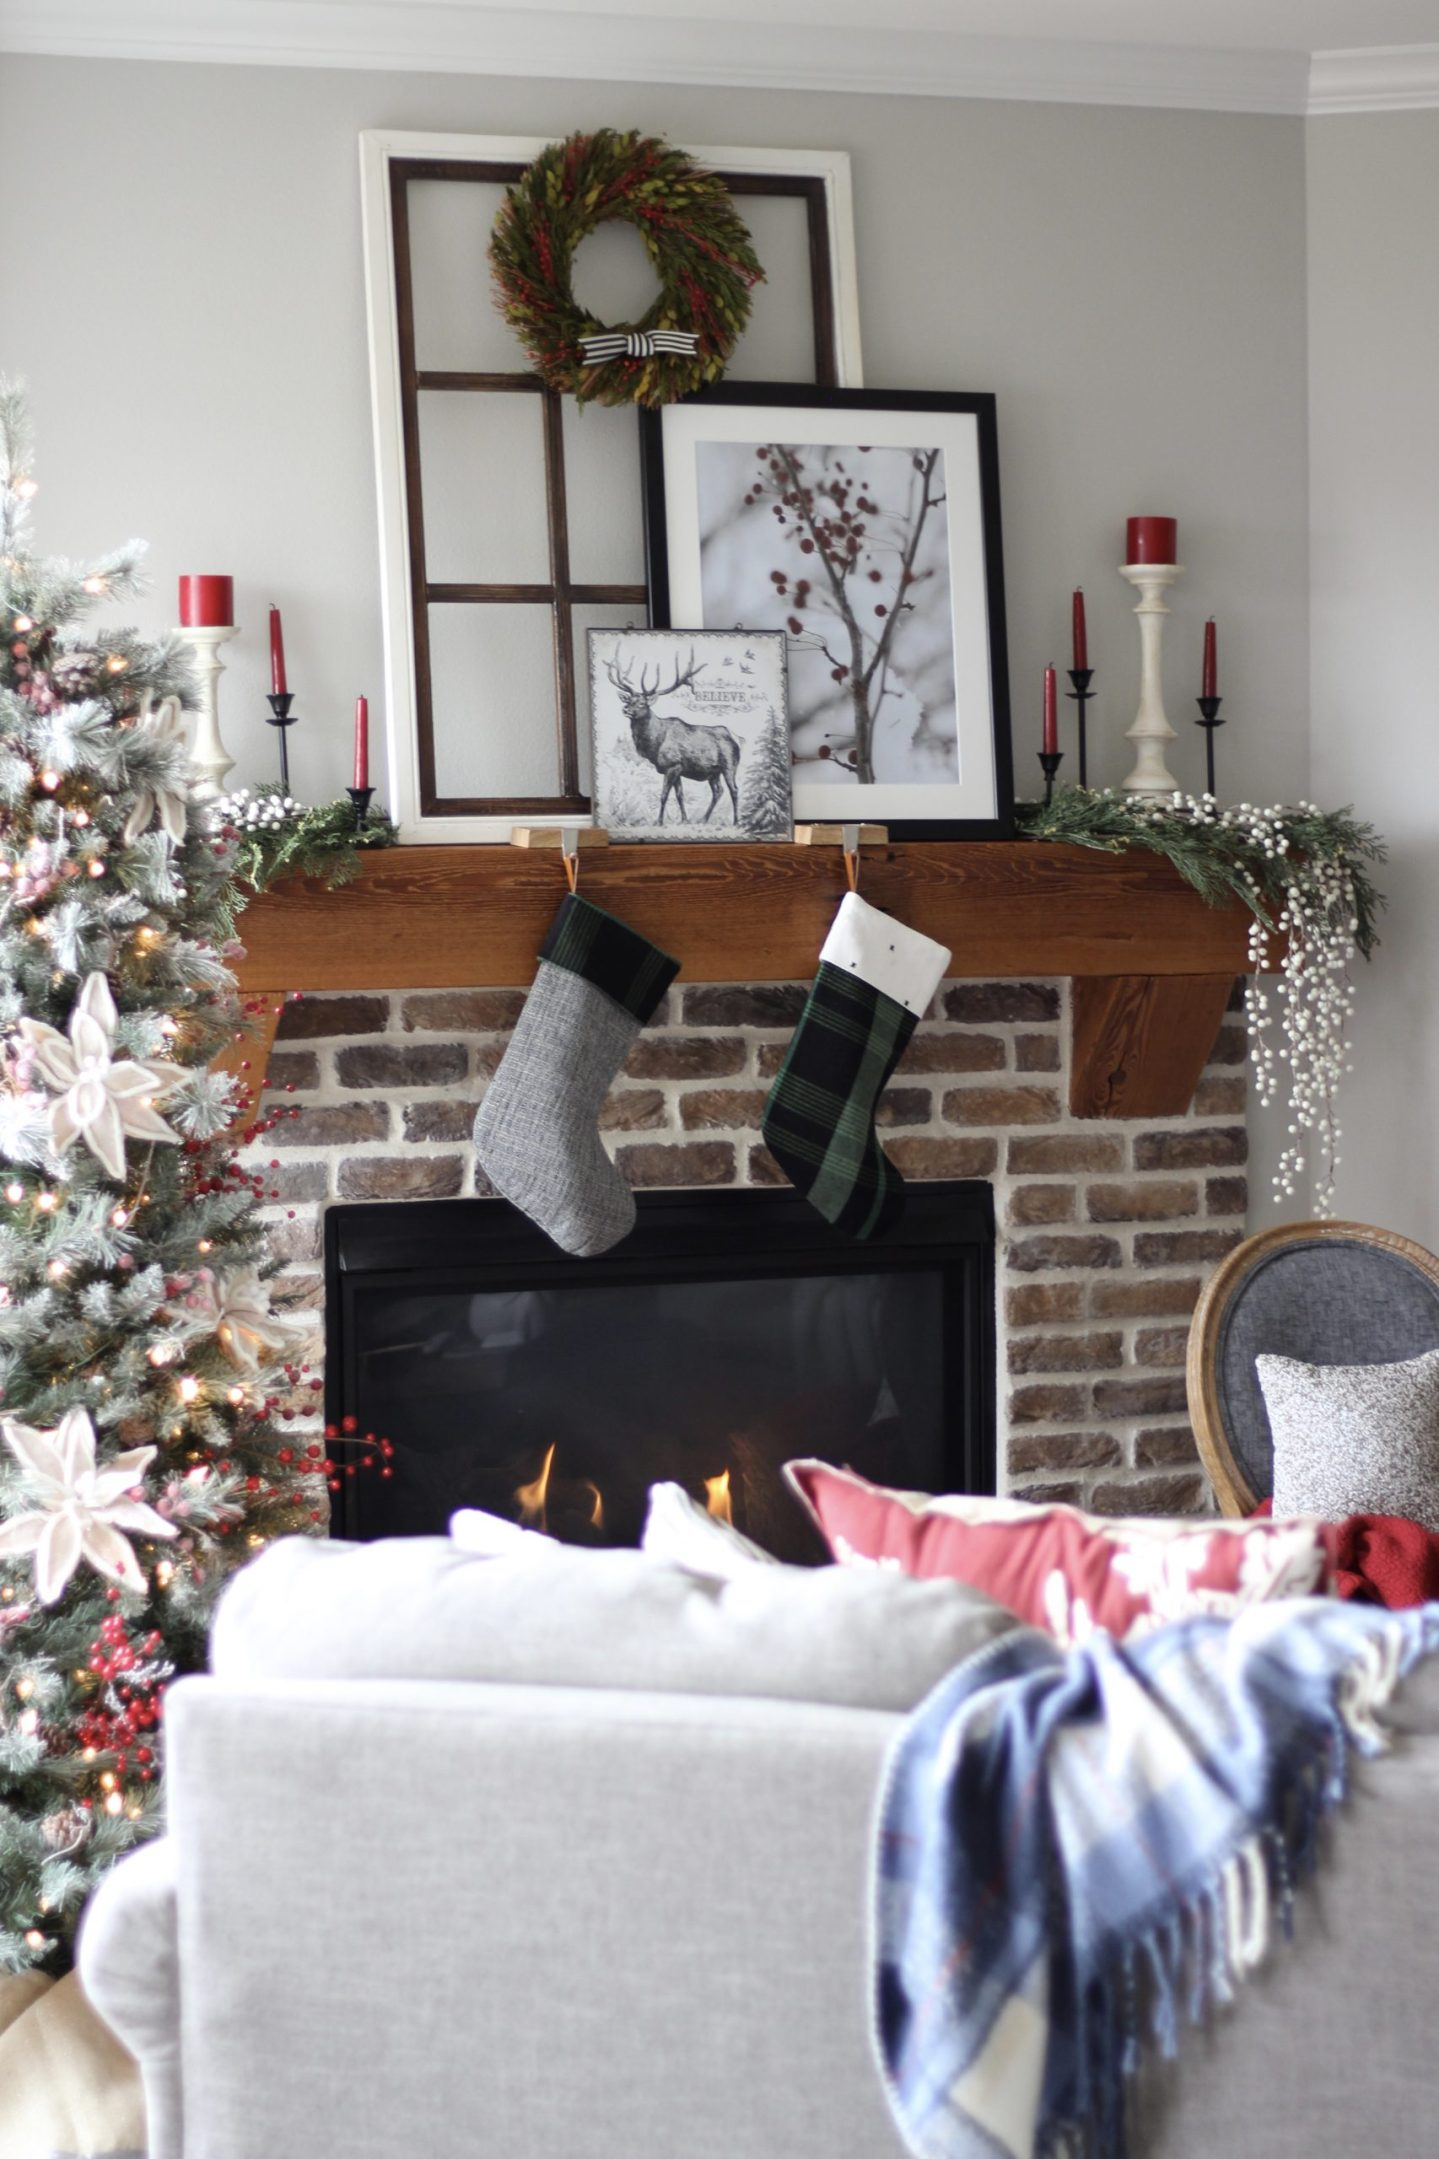 Deck the Halls with Homemakers